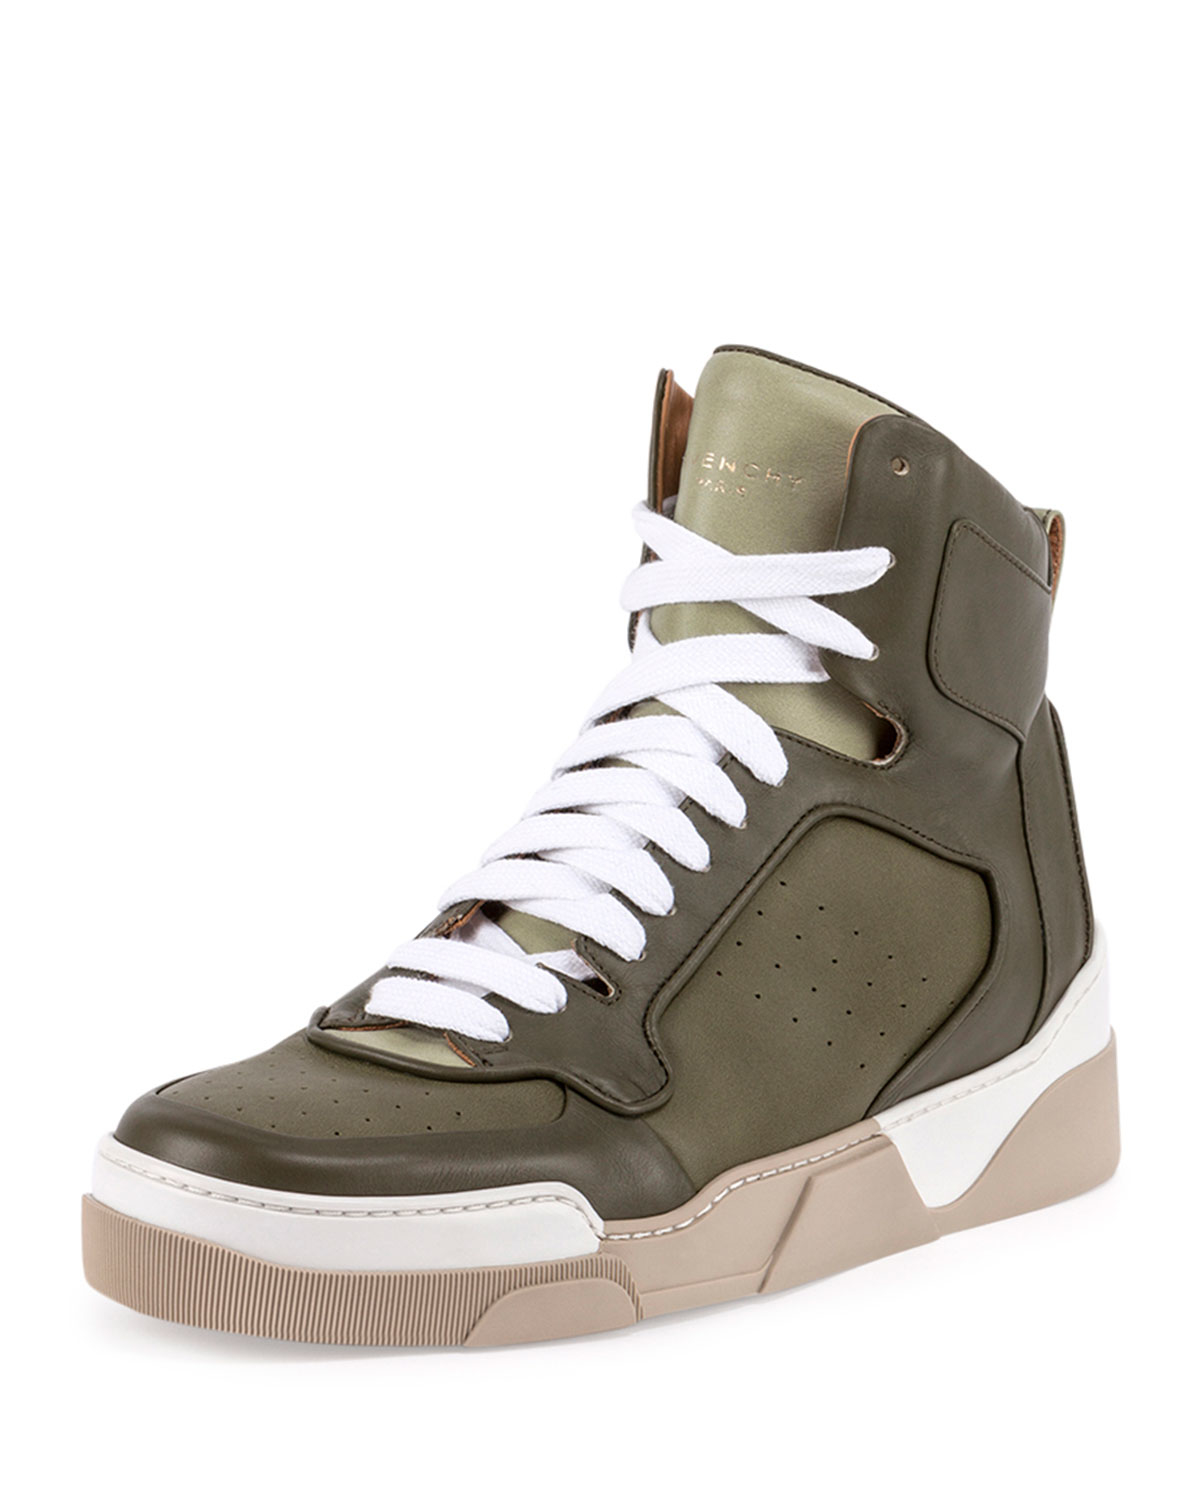 89a3607491cc Lyst - Givenchy Tyson Leather High-top Sneaker for Men